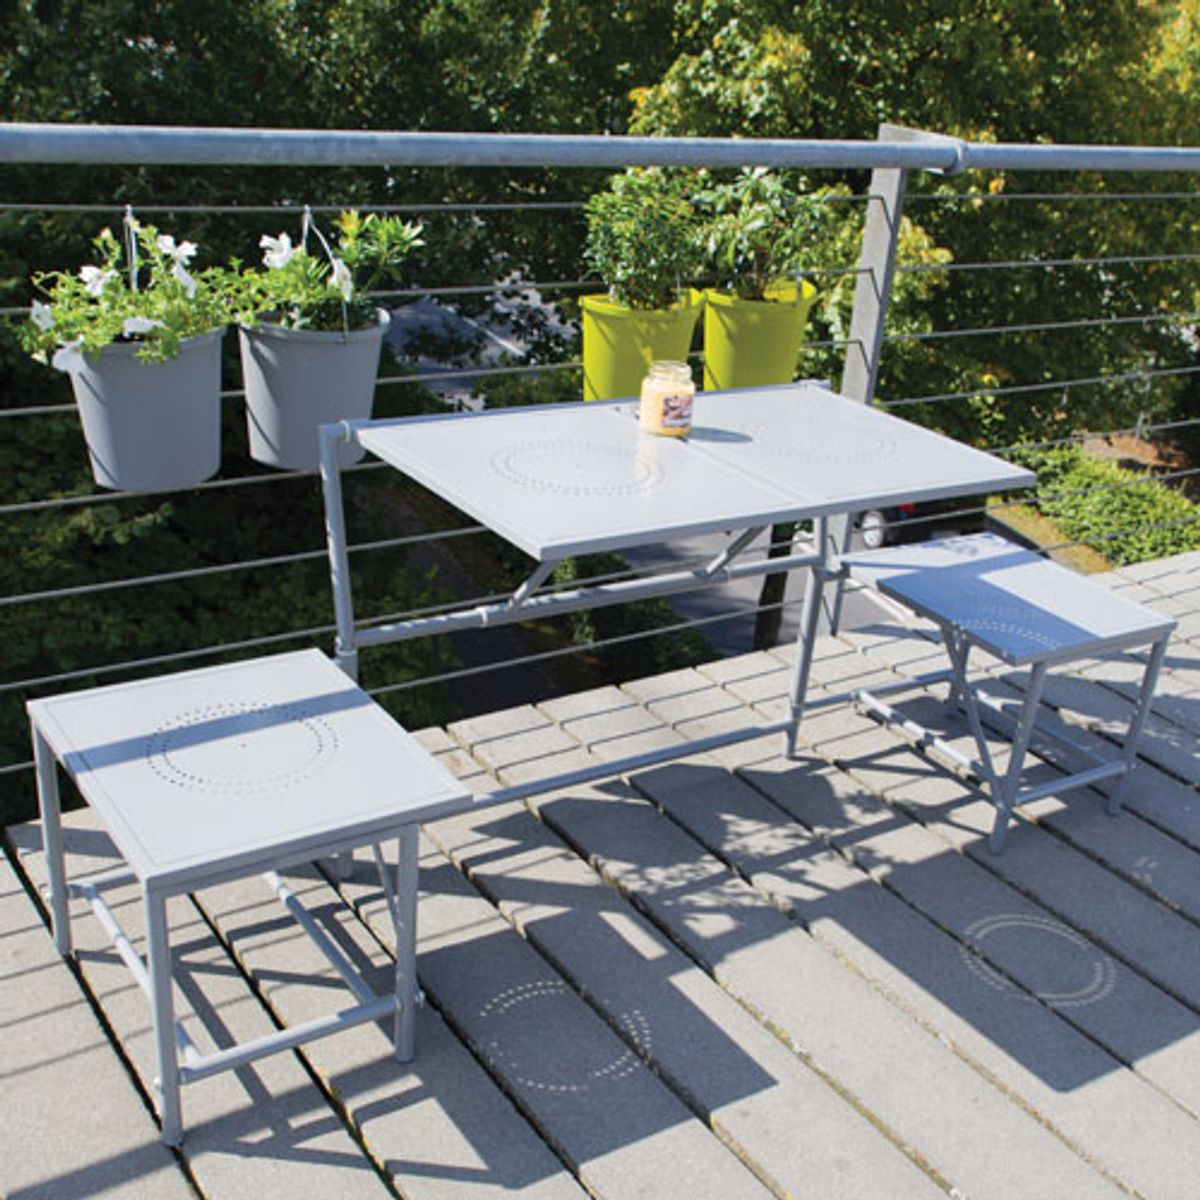 Salon 2 en 1 table banc pliant m tal pour balcon mybalconia decoclico - Table suspendue pour balcon ...